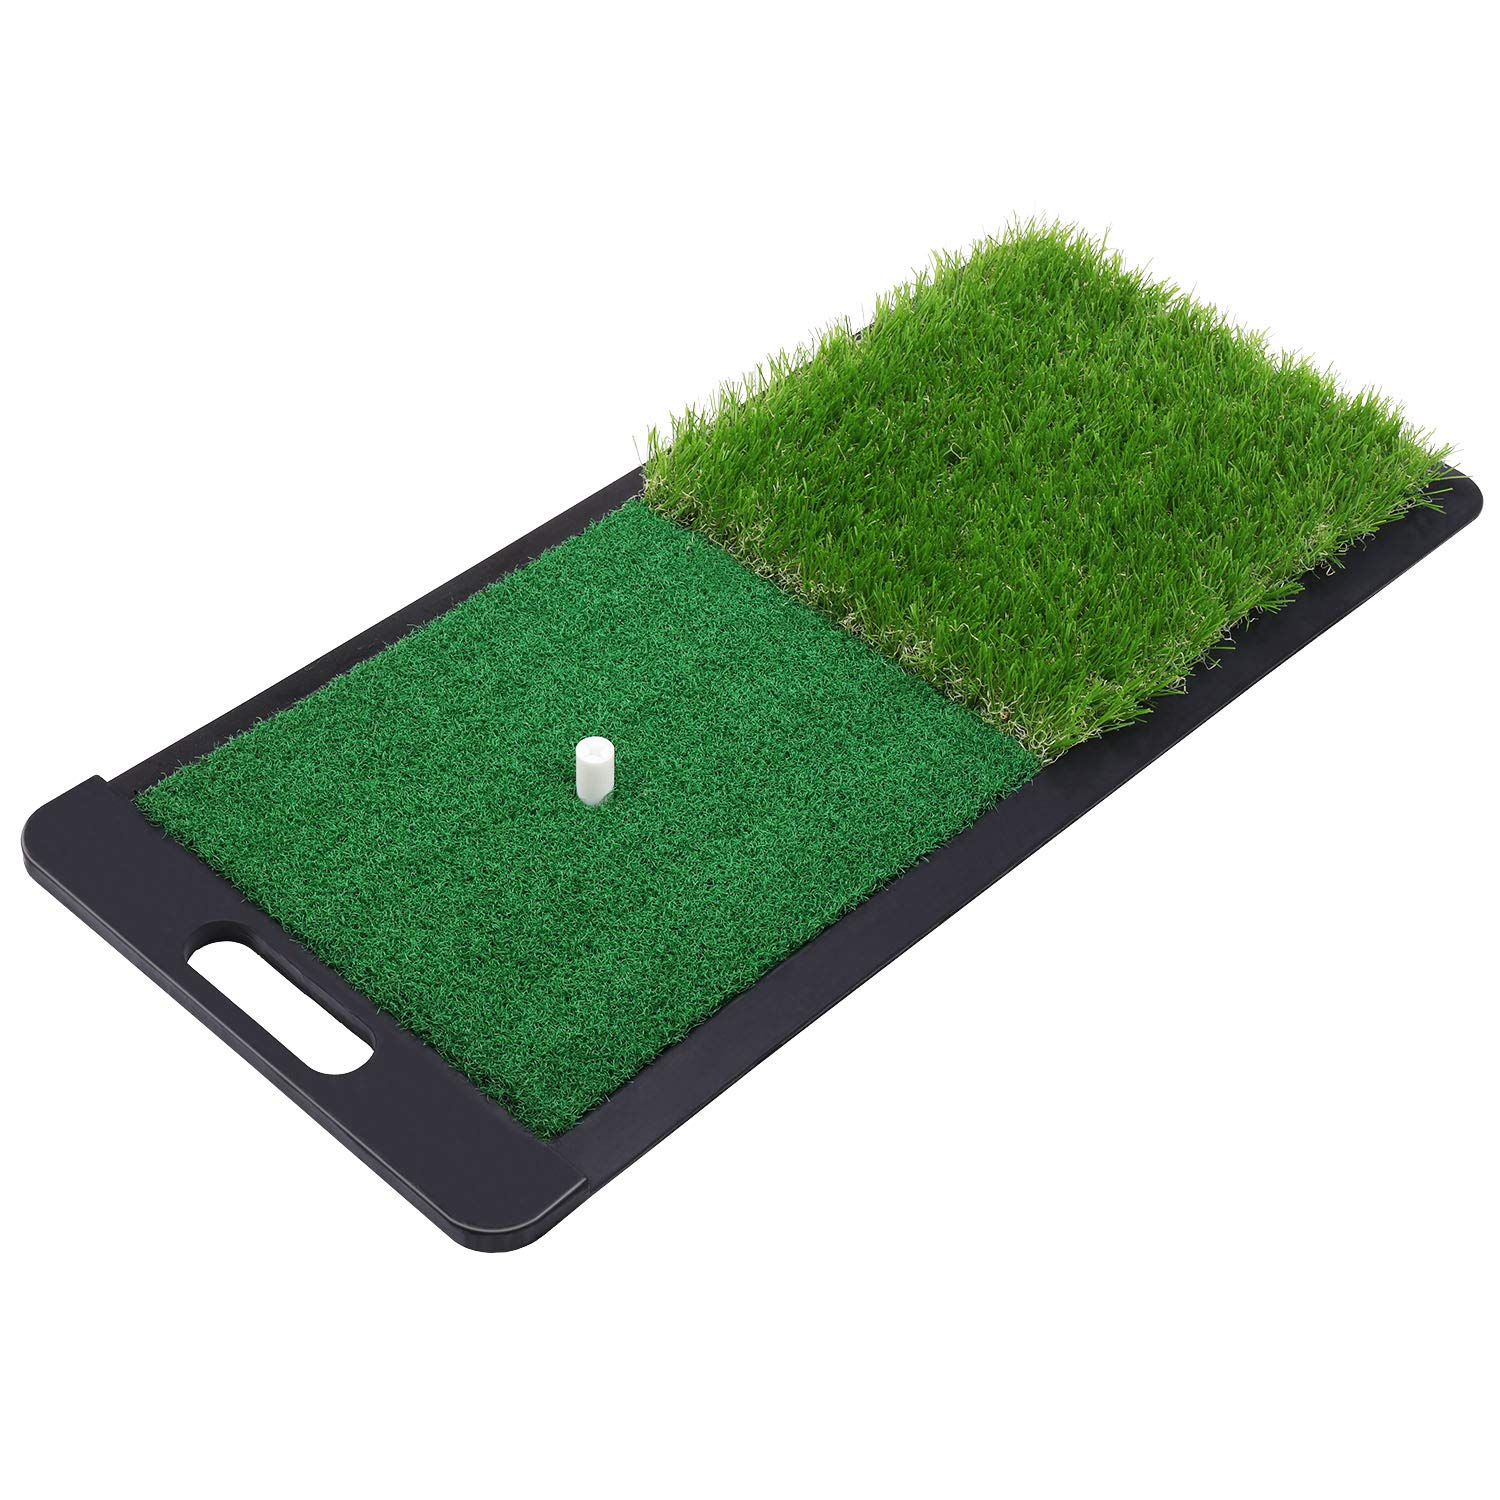 SkyLife Golf Practice Mat with Heavy Rubber Base for Driving Hitting Chipping Putting, Realistic Fairway Rough Turf, Rubber Tee Holder 2 3 4 Plastic Tees Included